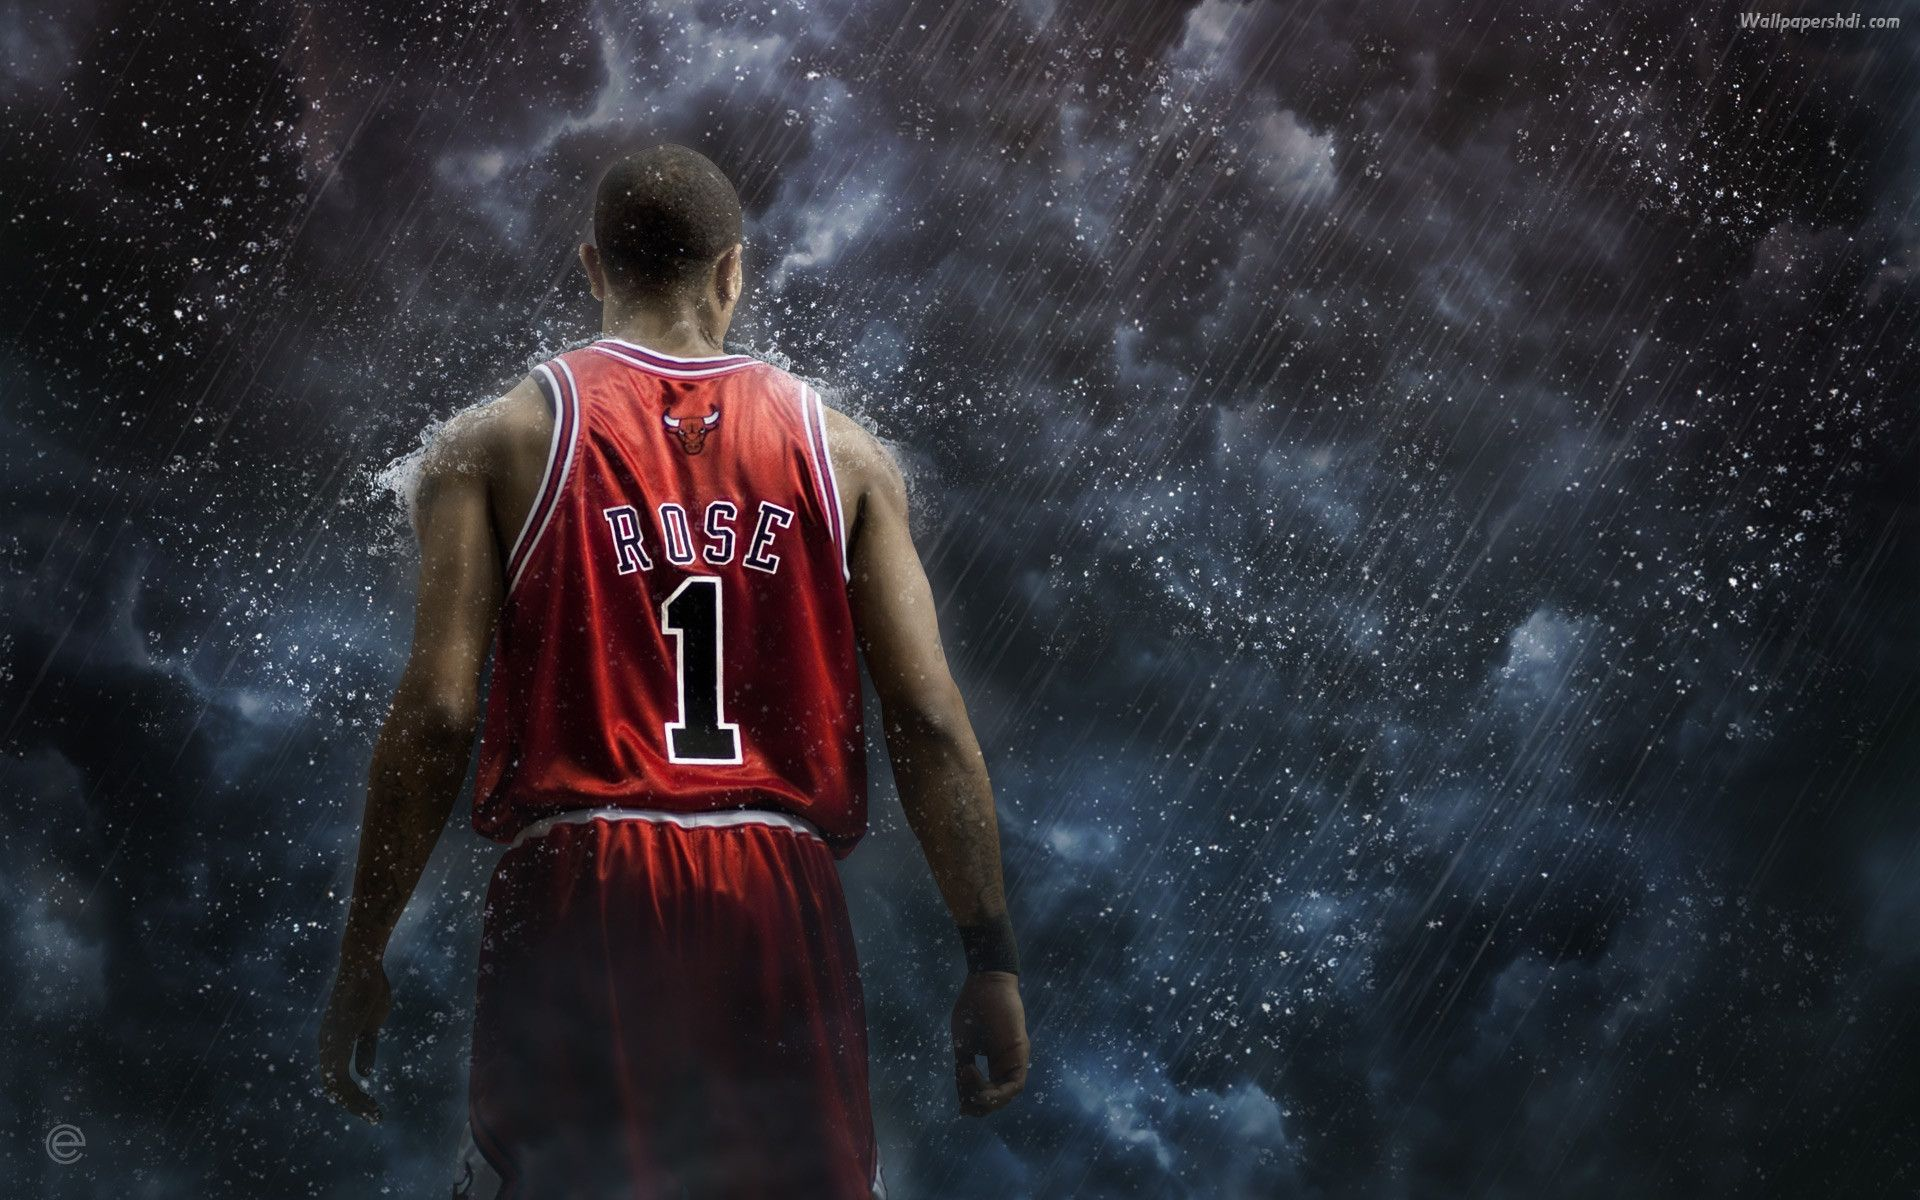 Derrick Rose Chicago Bulls 01 HD Wallpaper Chicago Wallpapers HD 1920x1200